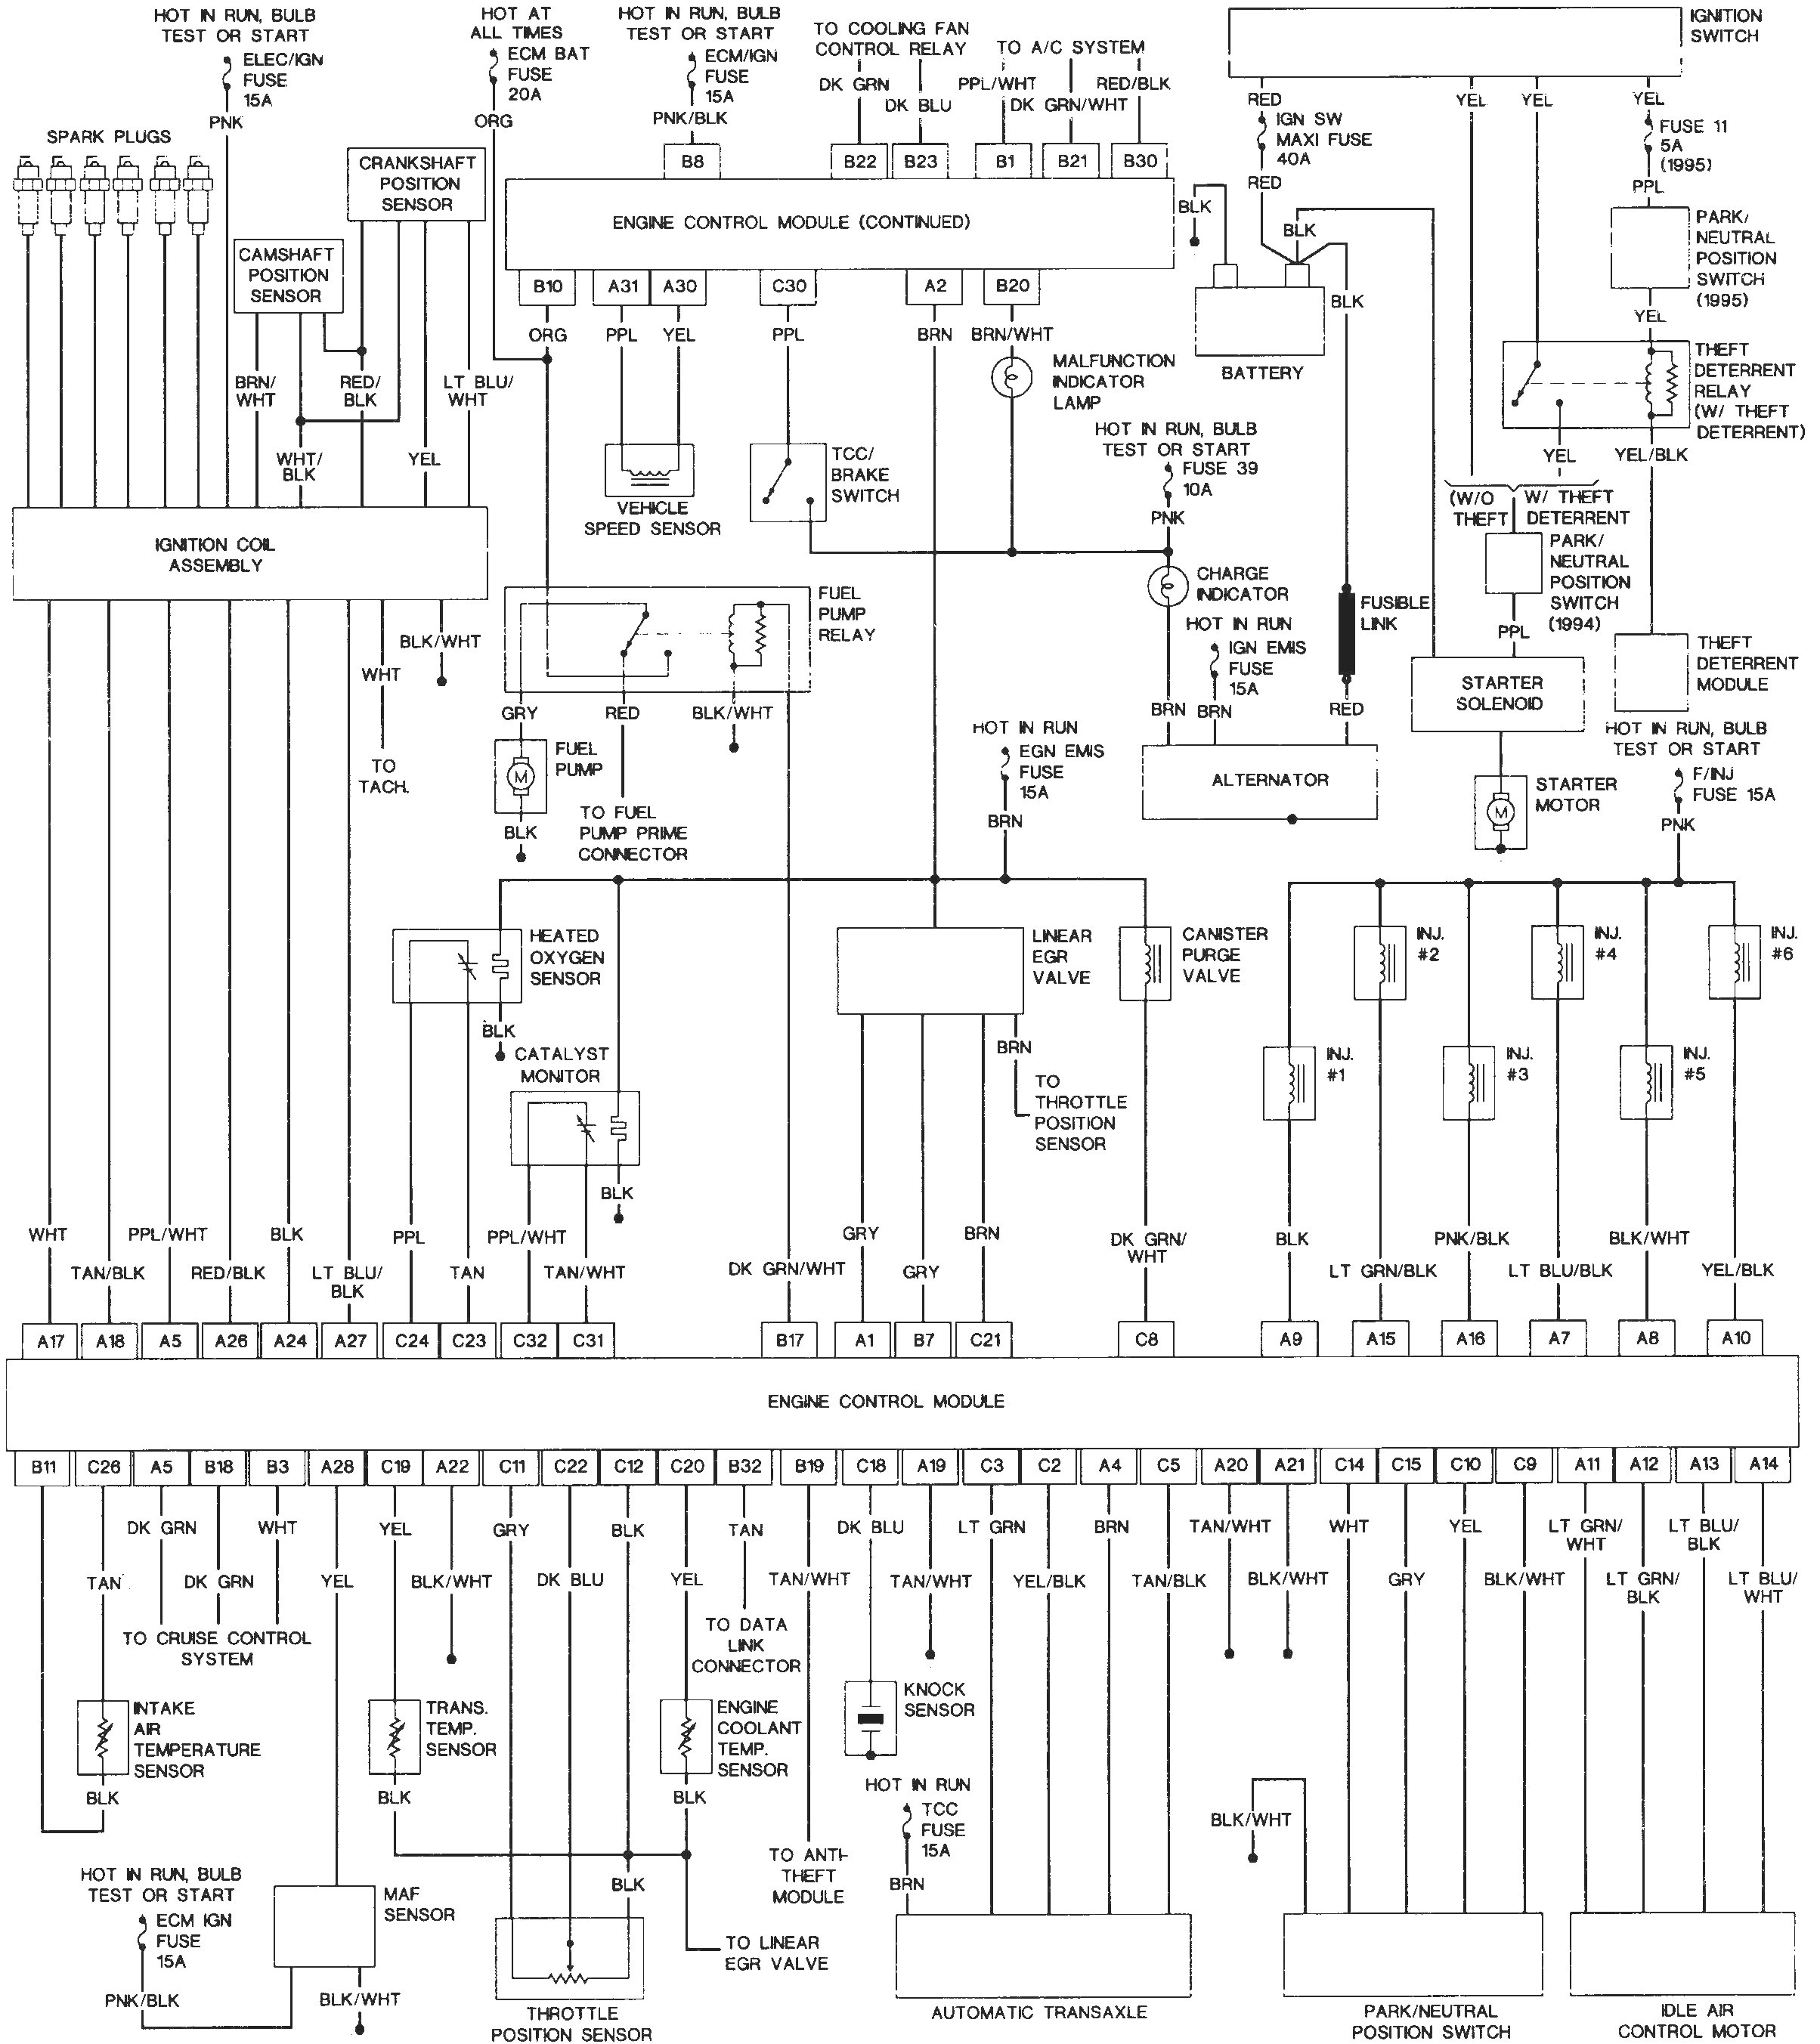 2000 Acura Tl Engine Diagram Acura Tl Fuse Box Diagram Of 2000 Acura Tl Engine Diagram